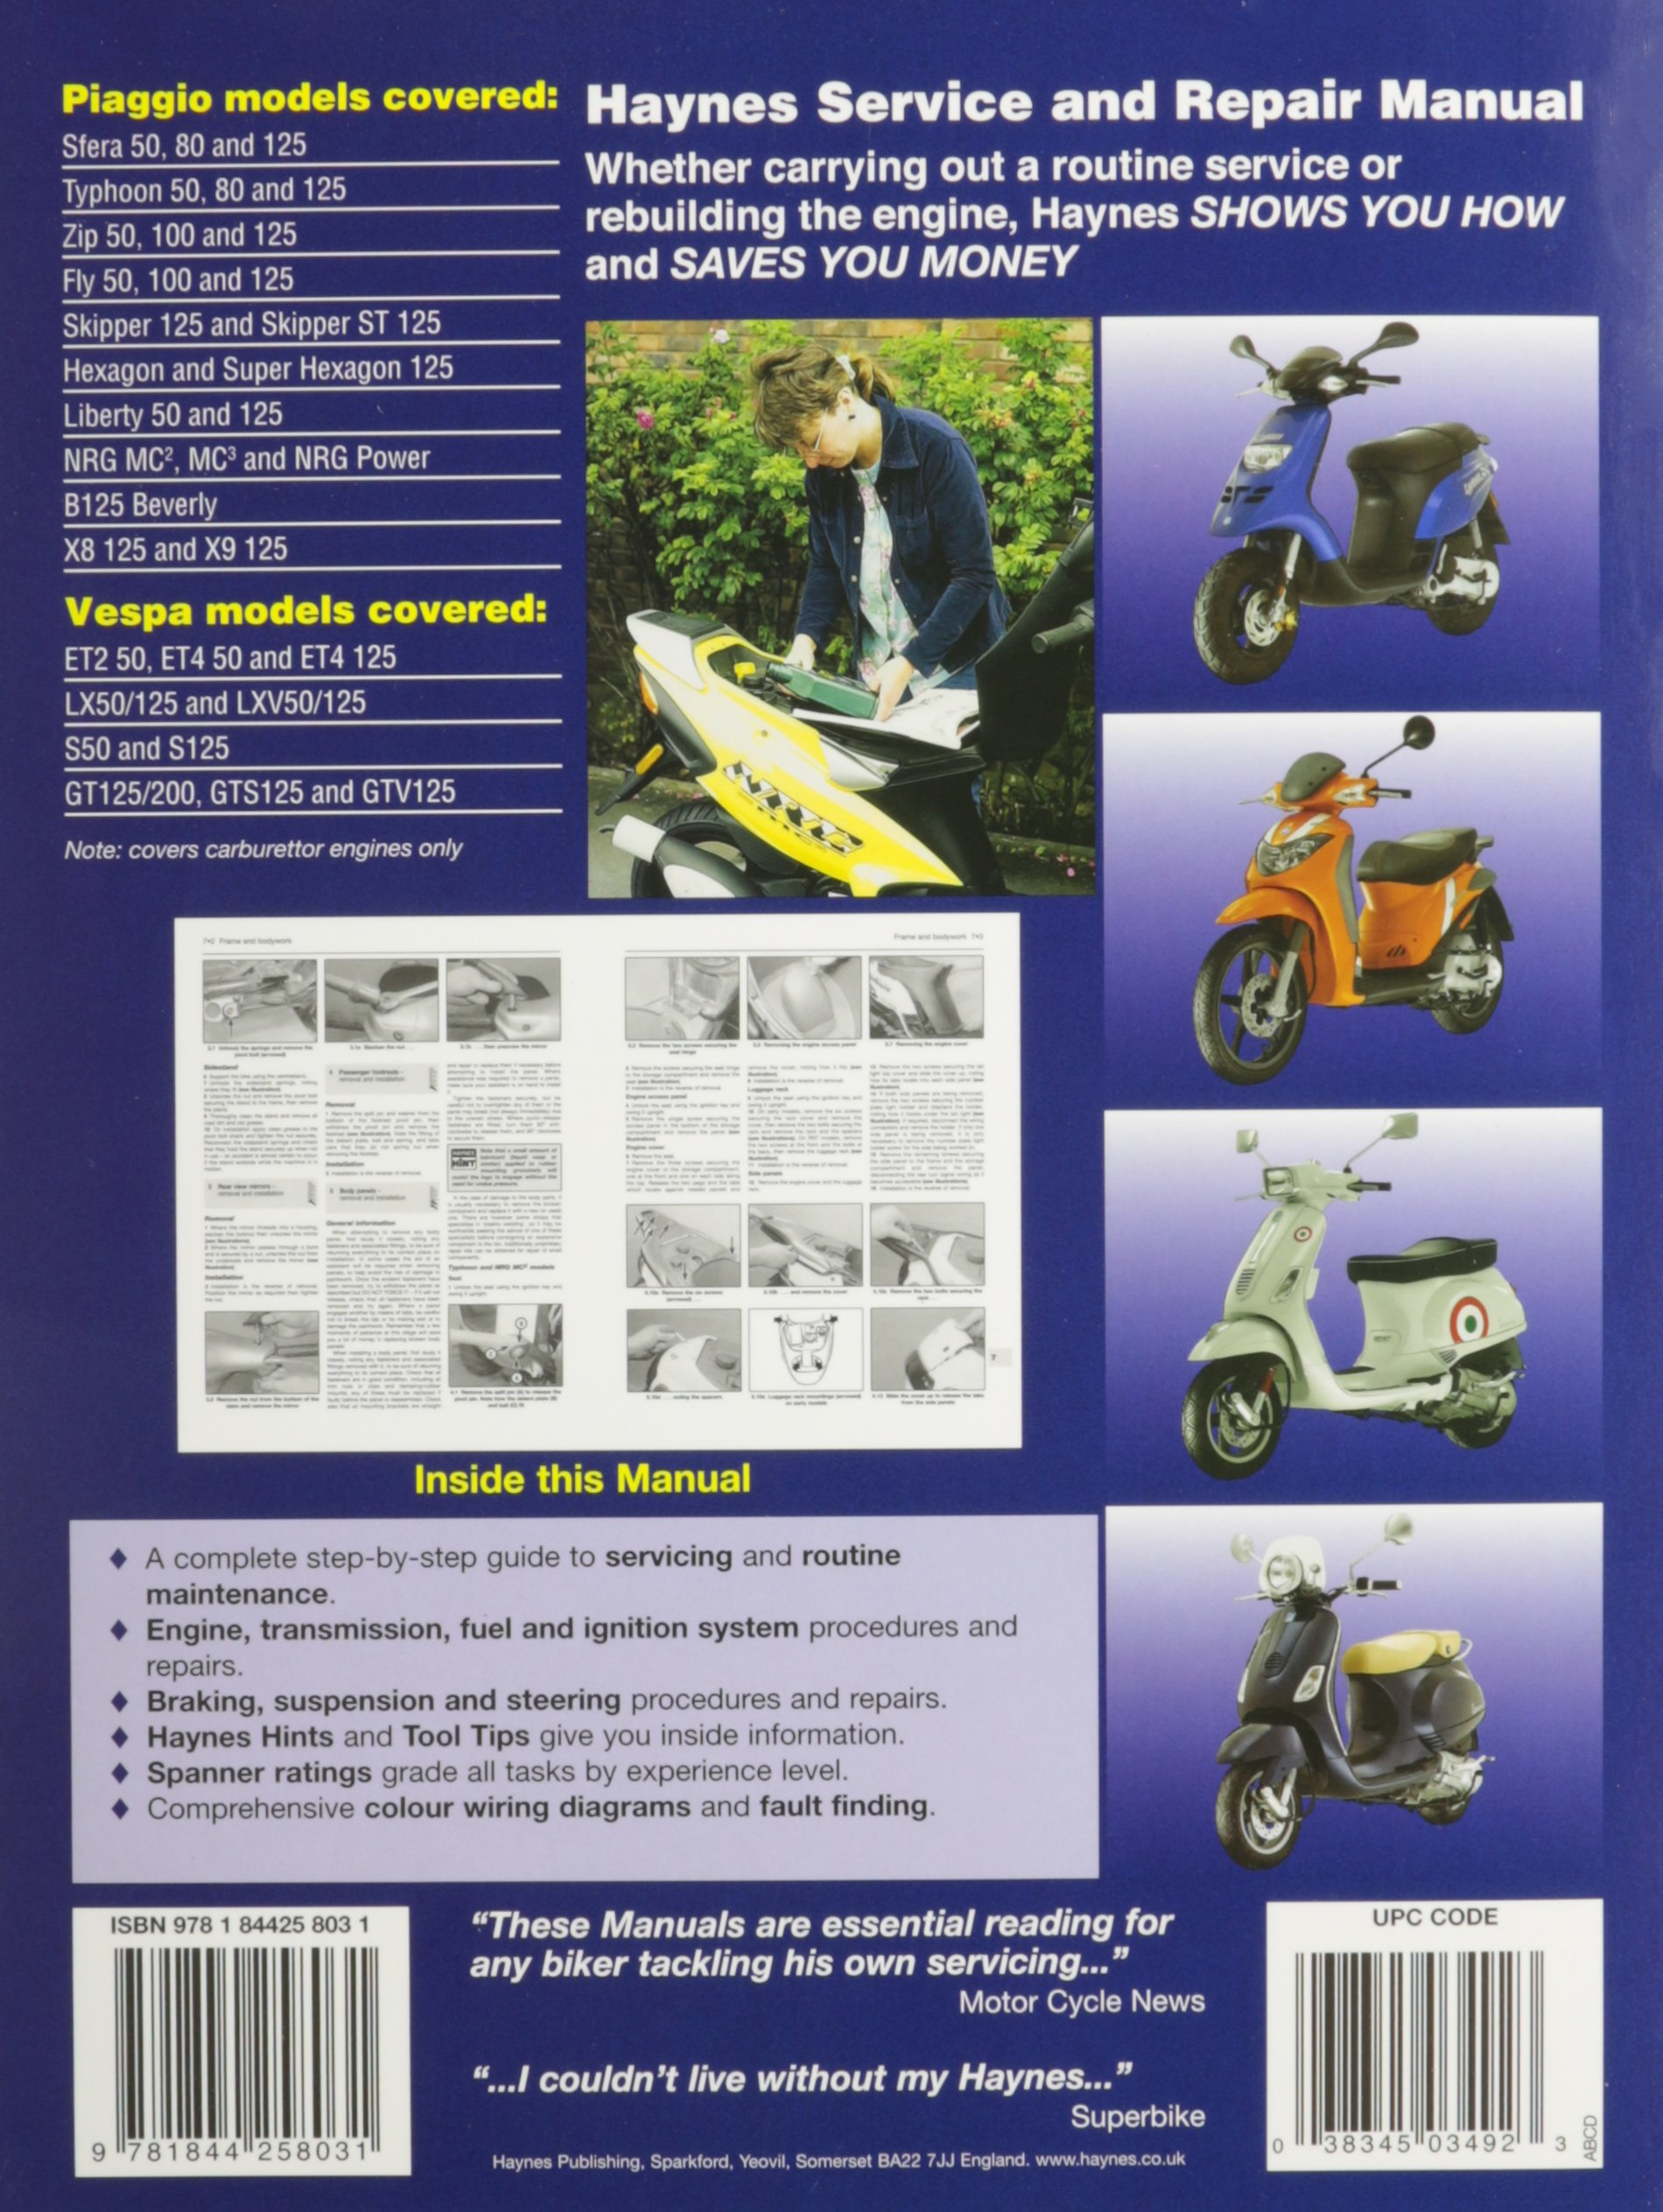 piaggio vespa scooters 1991 2009 service repair manuals piaggio vespa scooters 1991 2009 service repair manuals amazon co uk anon 9781844258031 books